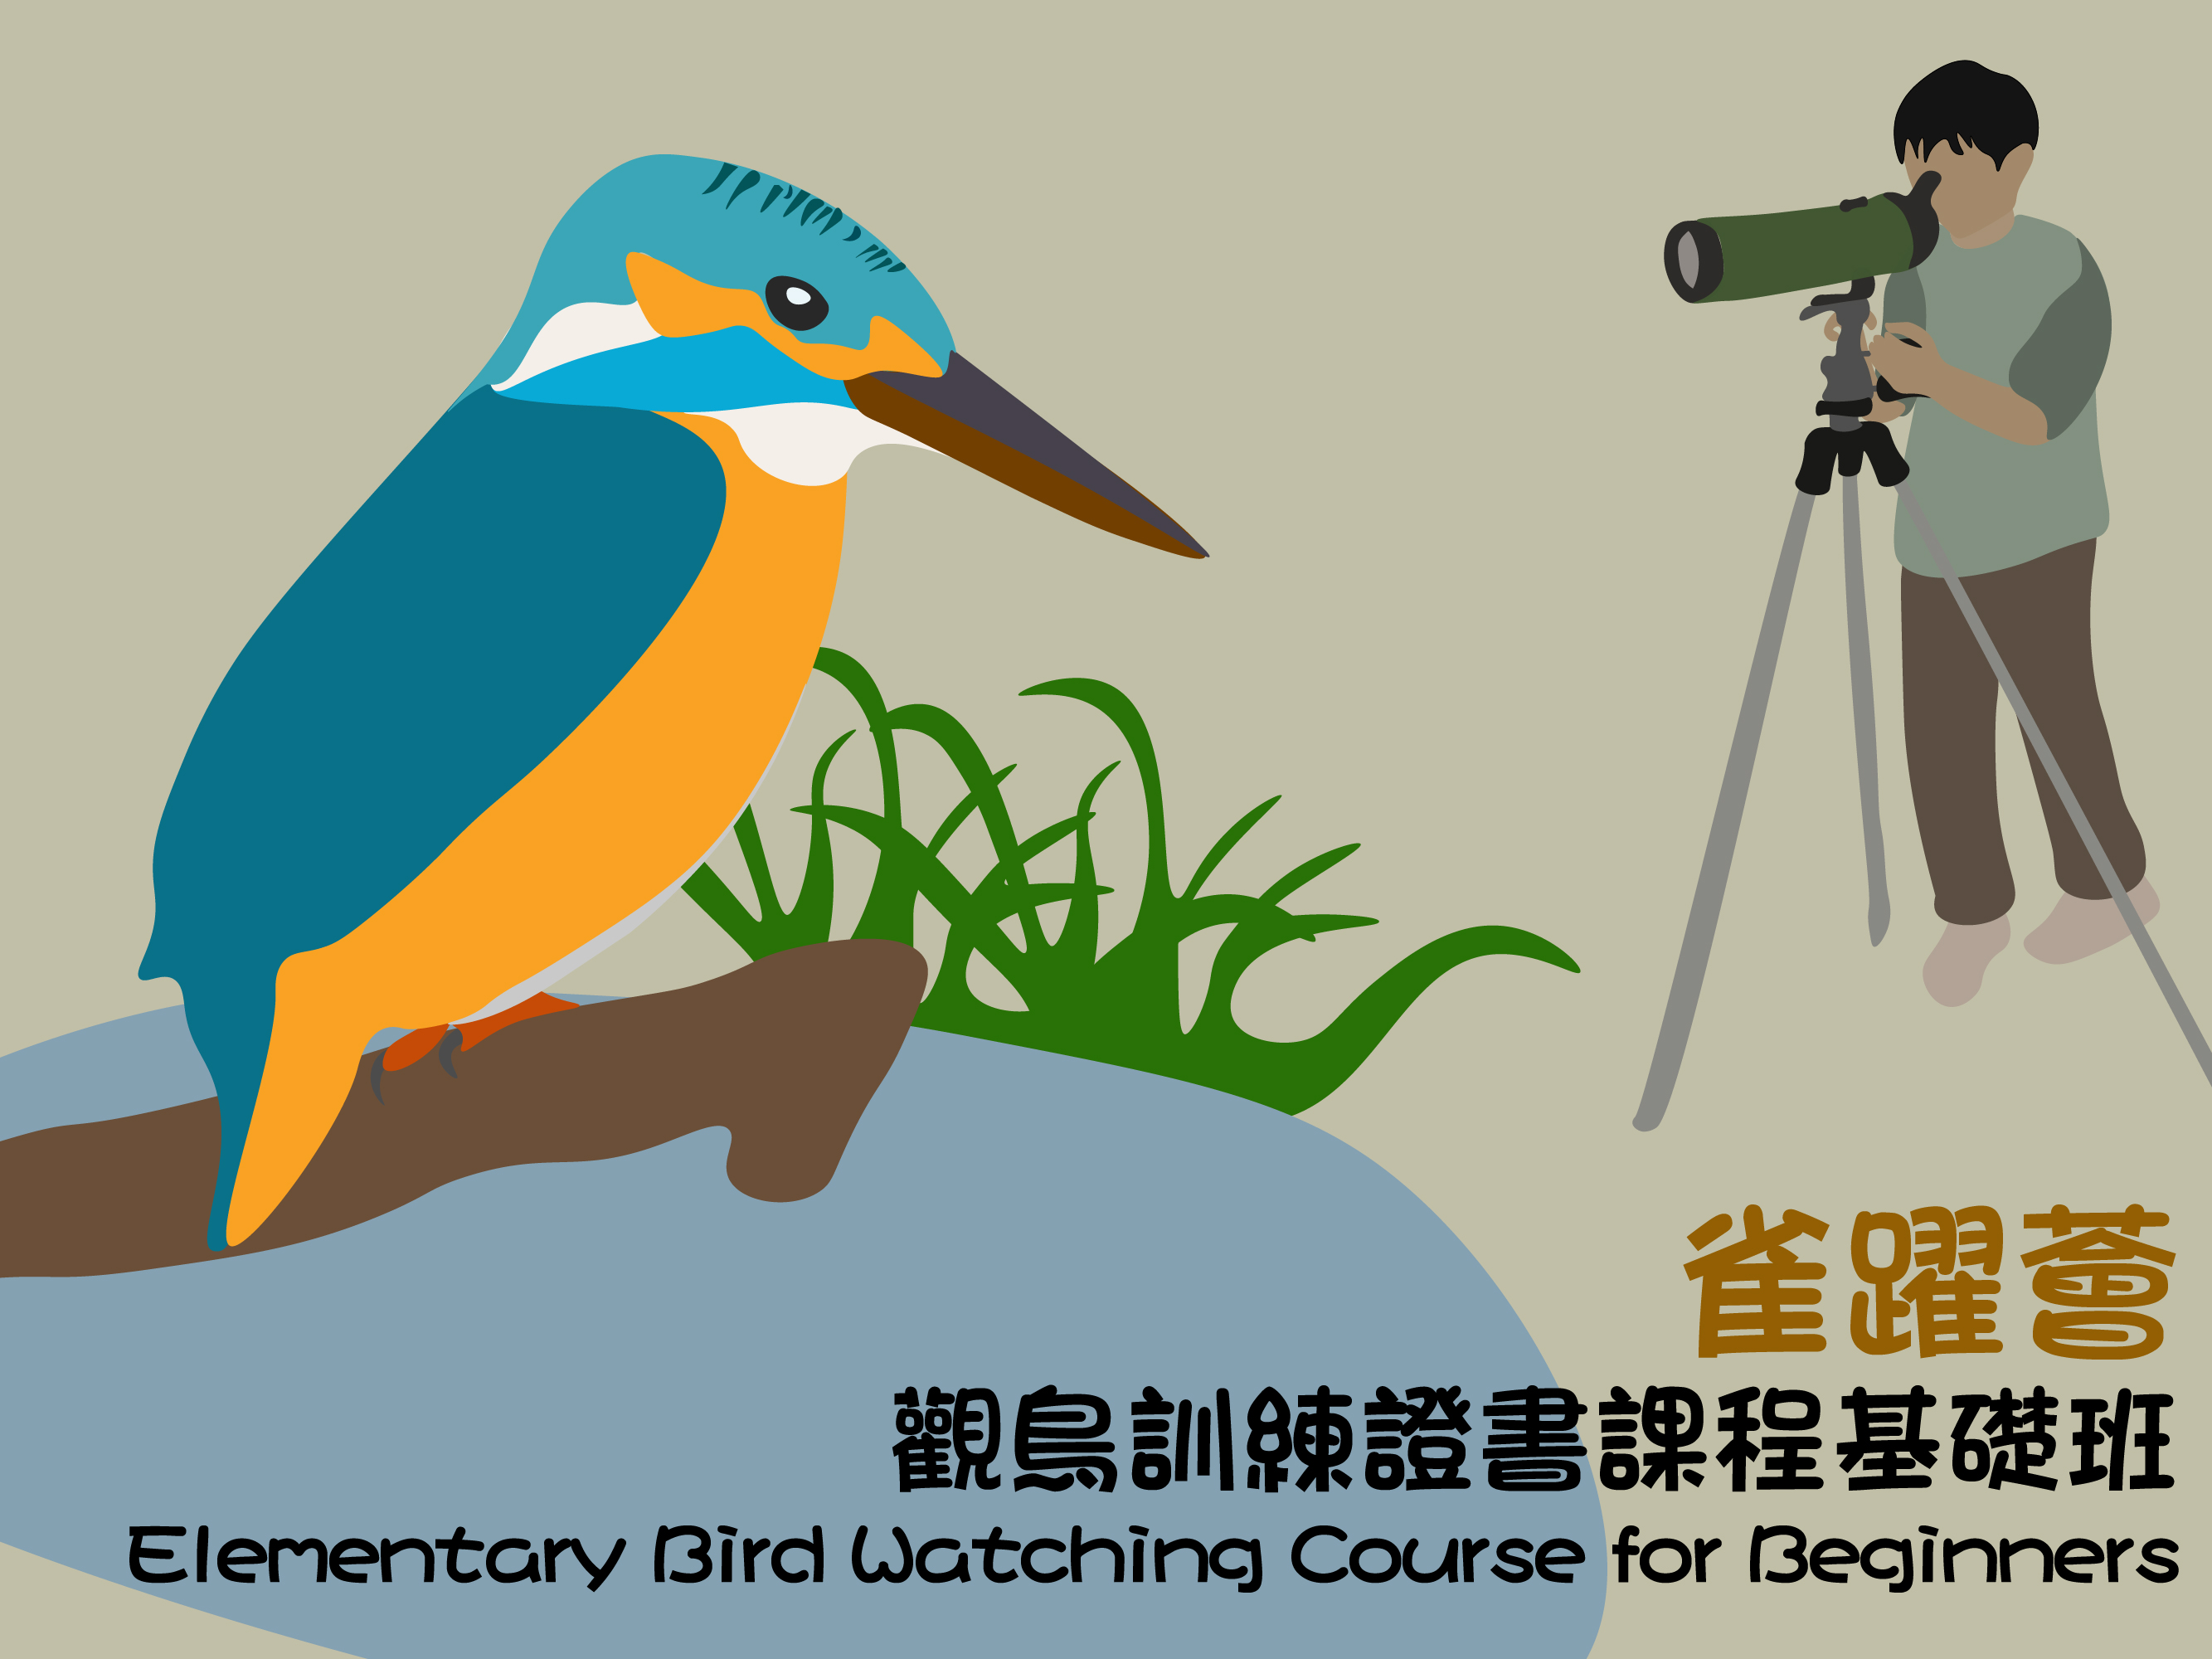 Elementary Bird Watching Course for Beginners